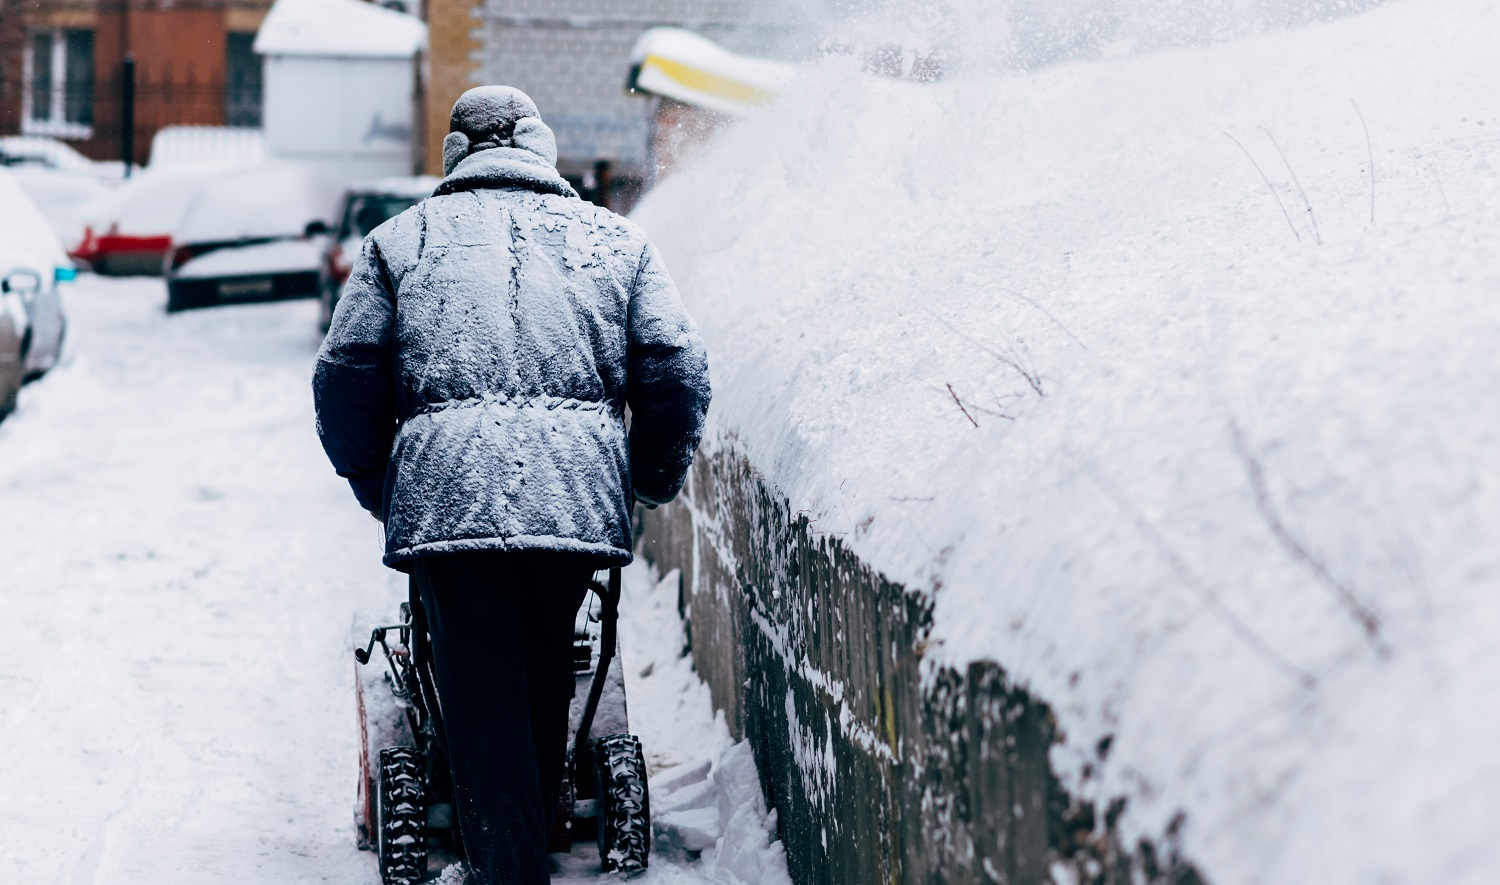 a man cleans up in the yard removes the snowthrower